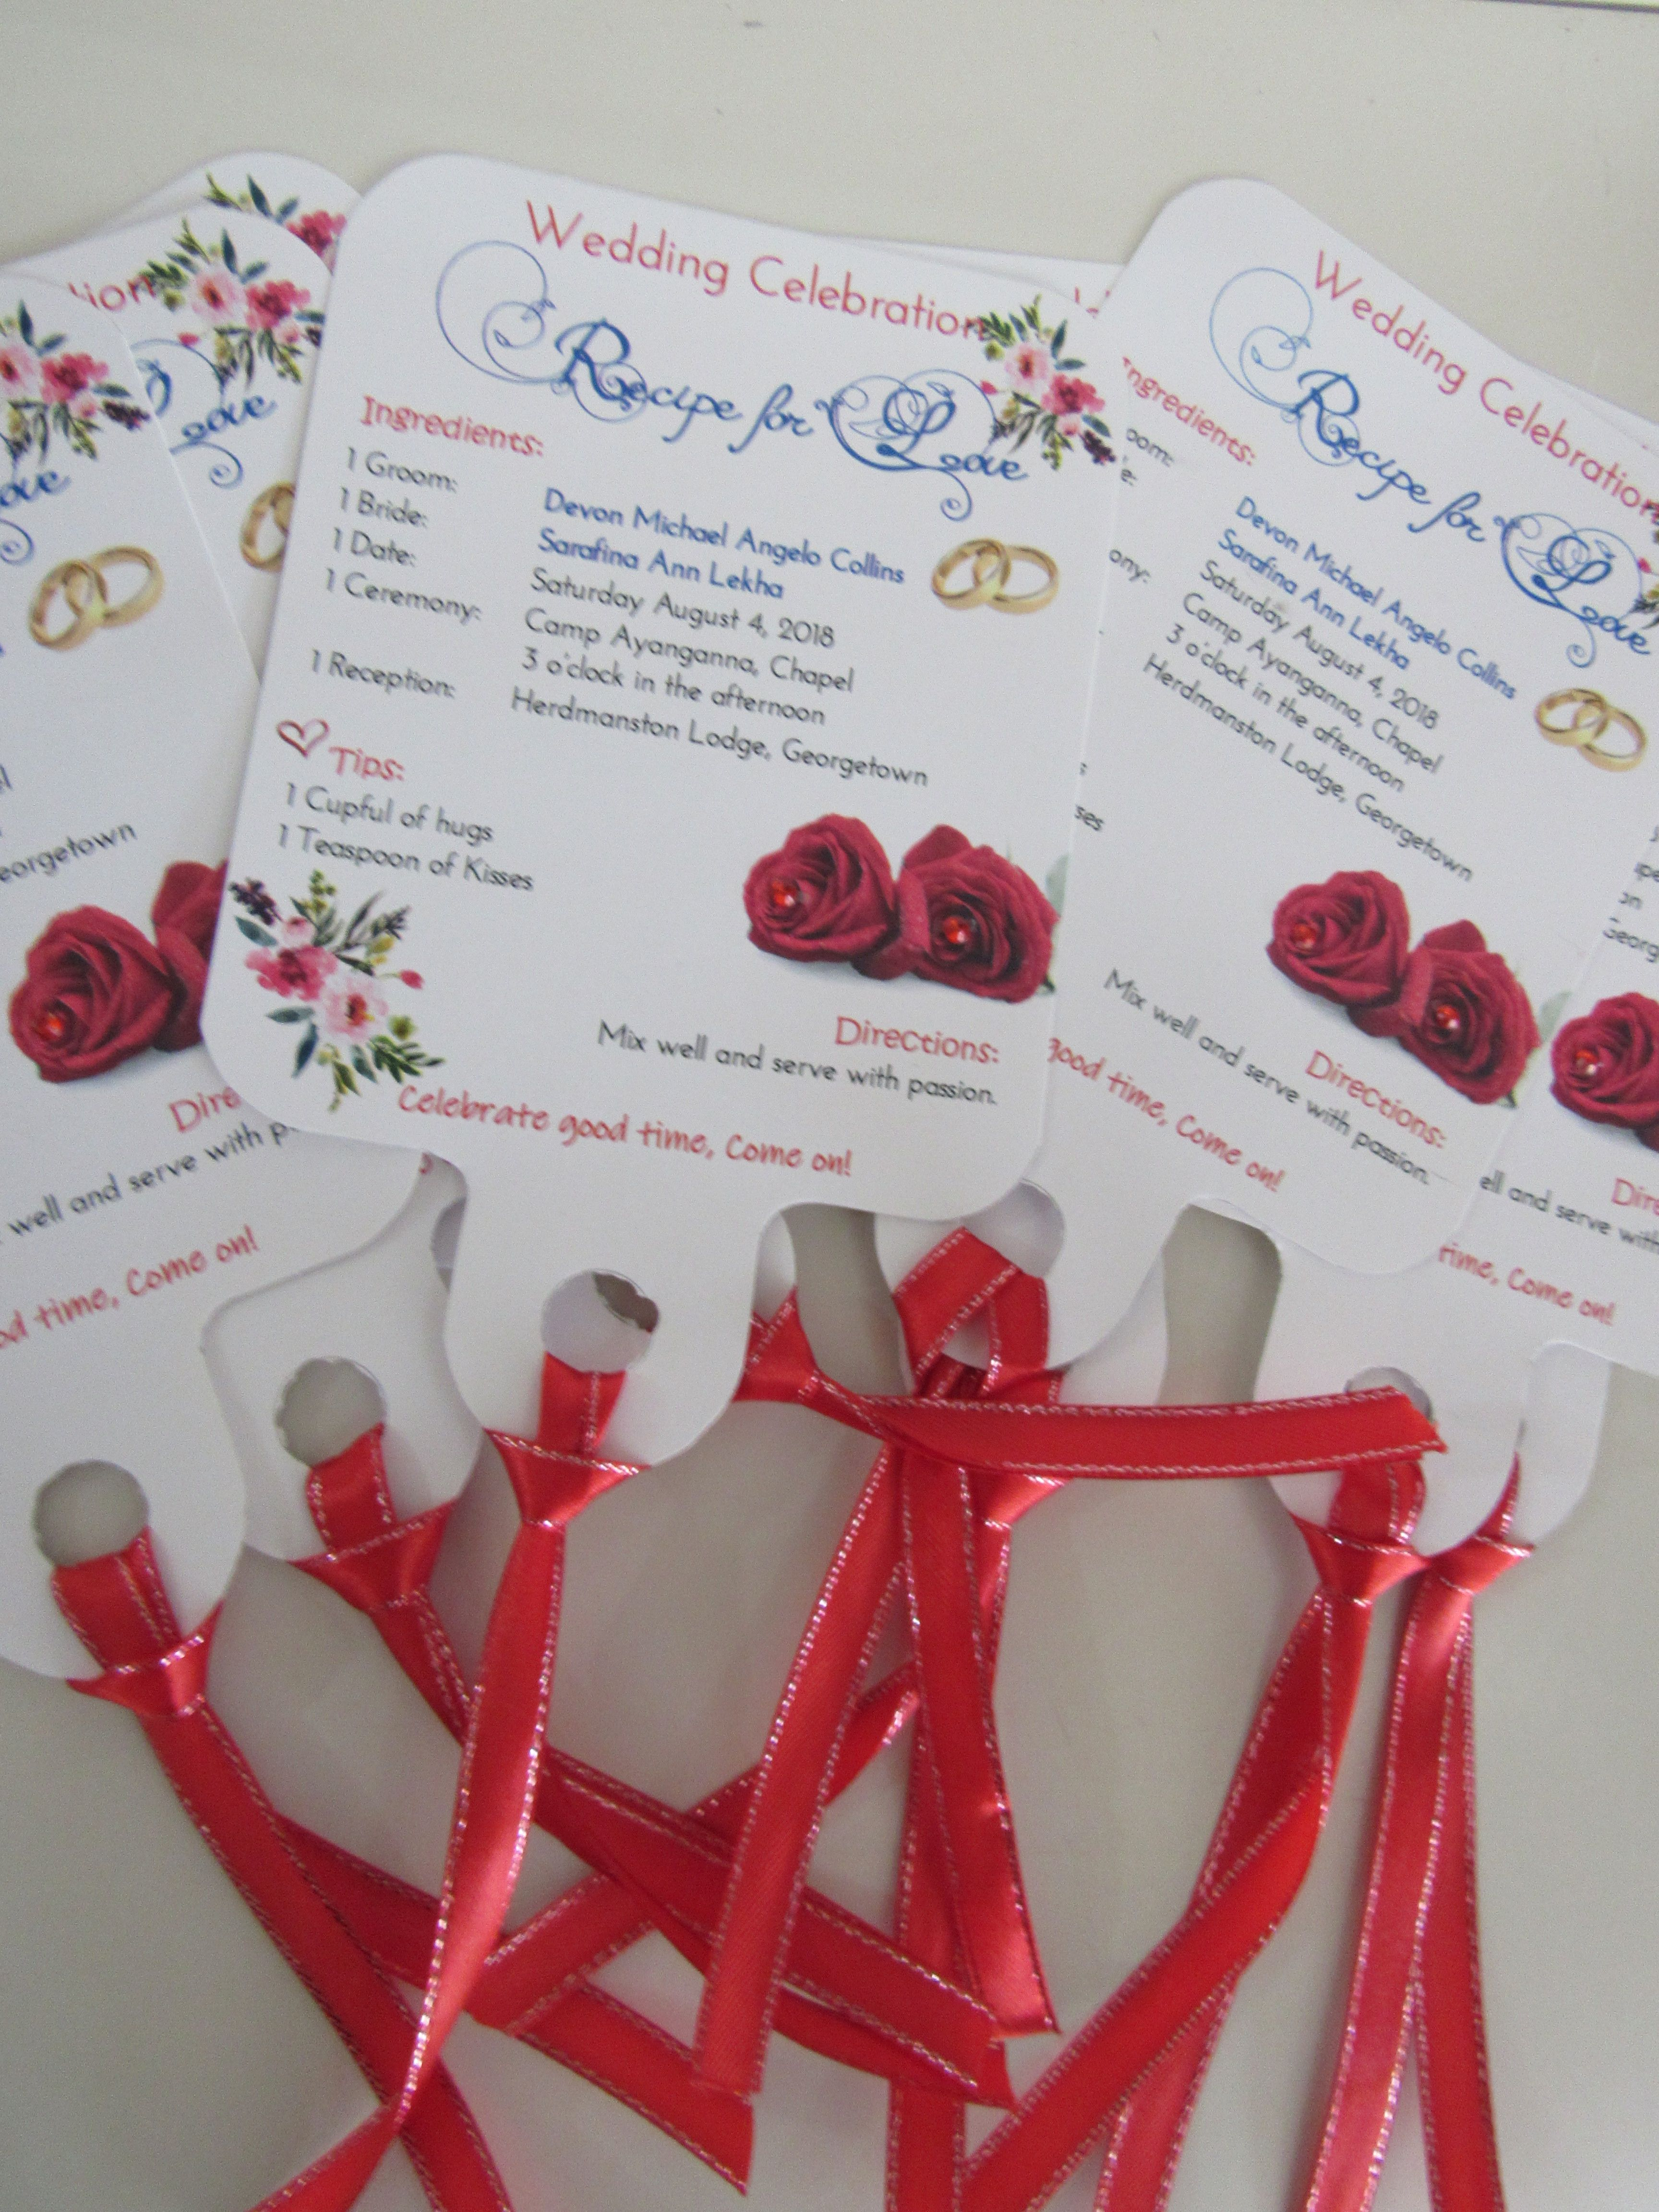 Pin by Executive Office Services on Event program (booklets) | Pinterest